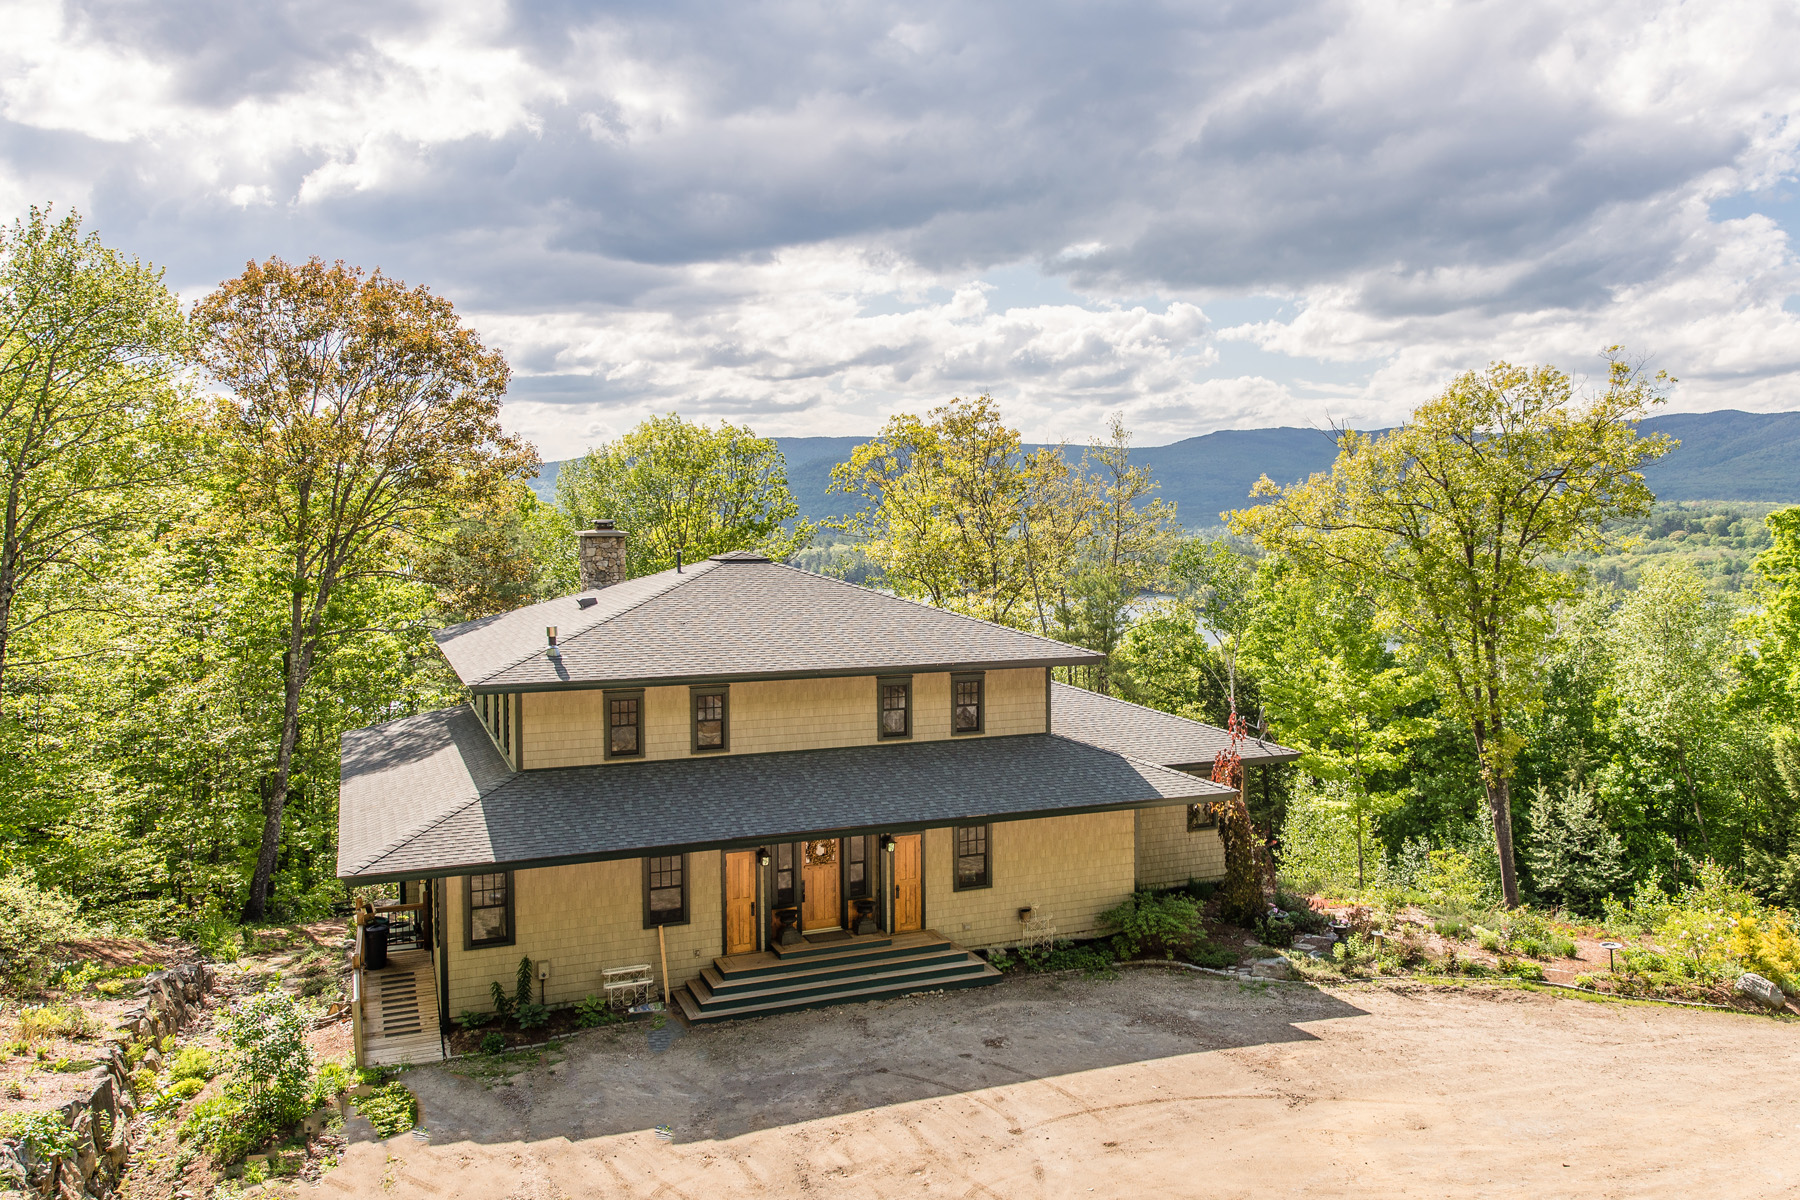 Single Family Home for Sale at 0 Squam Lake Rd, Sandwich Sandwich, New Hampshire 03227 United States